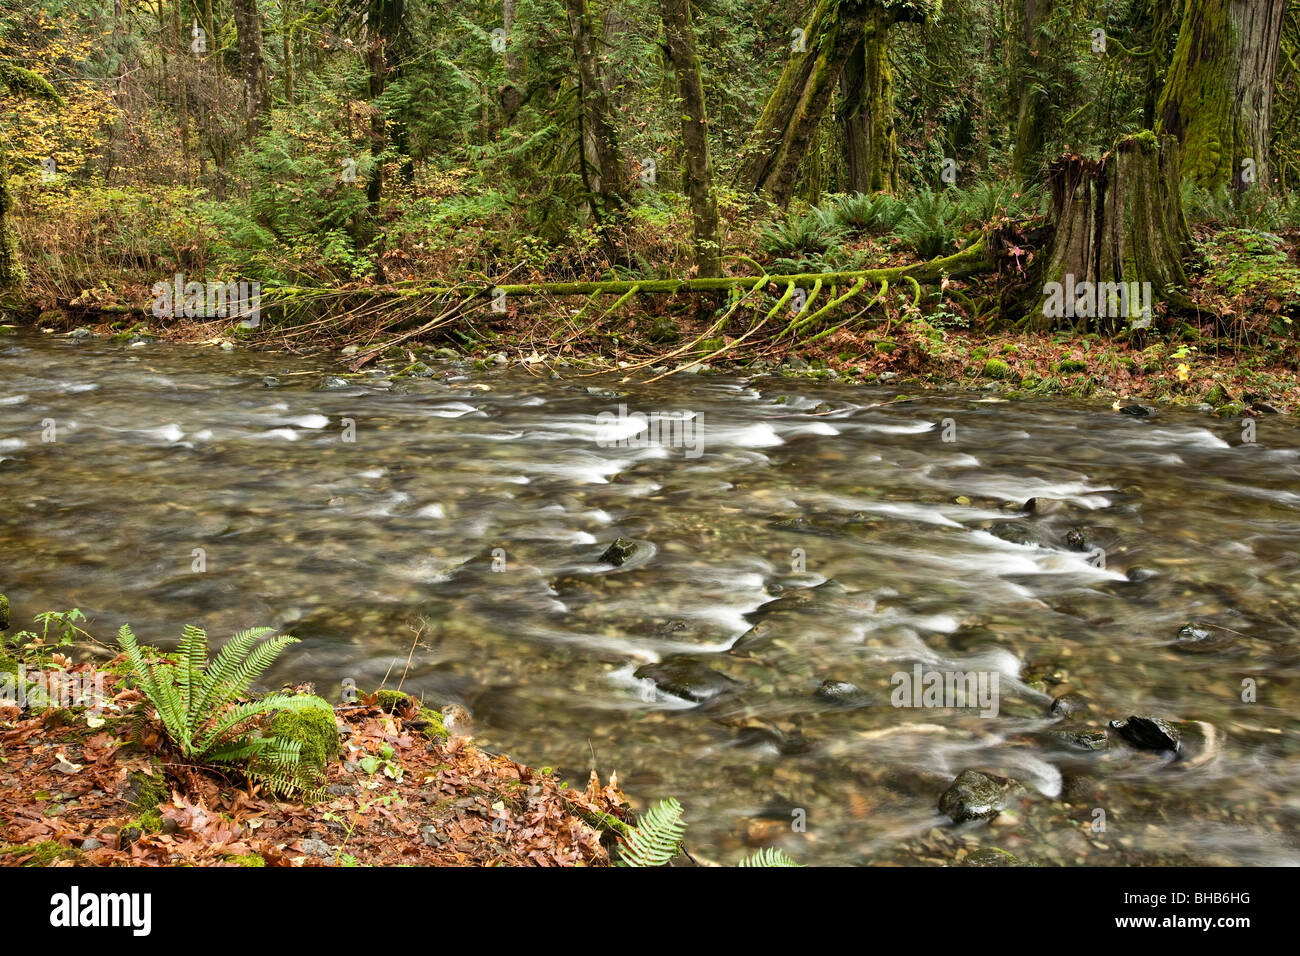 Salmon run at Goldstream Park. Vancouver Island, BC